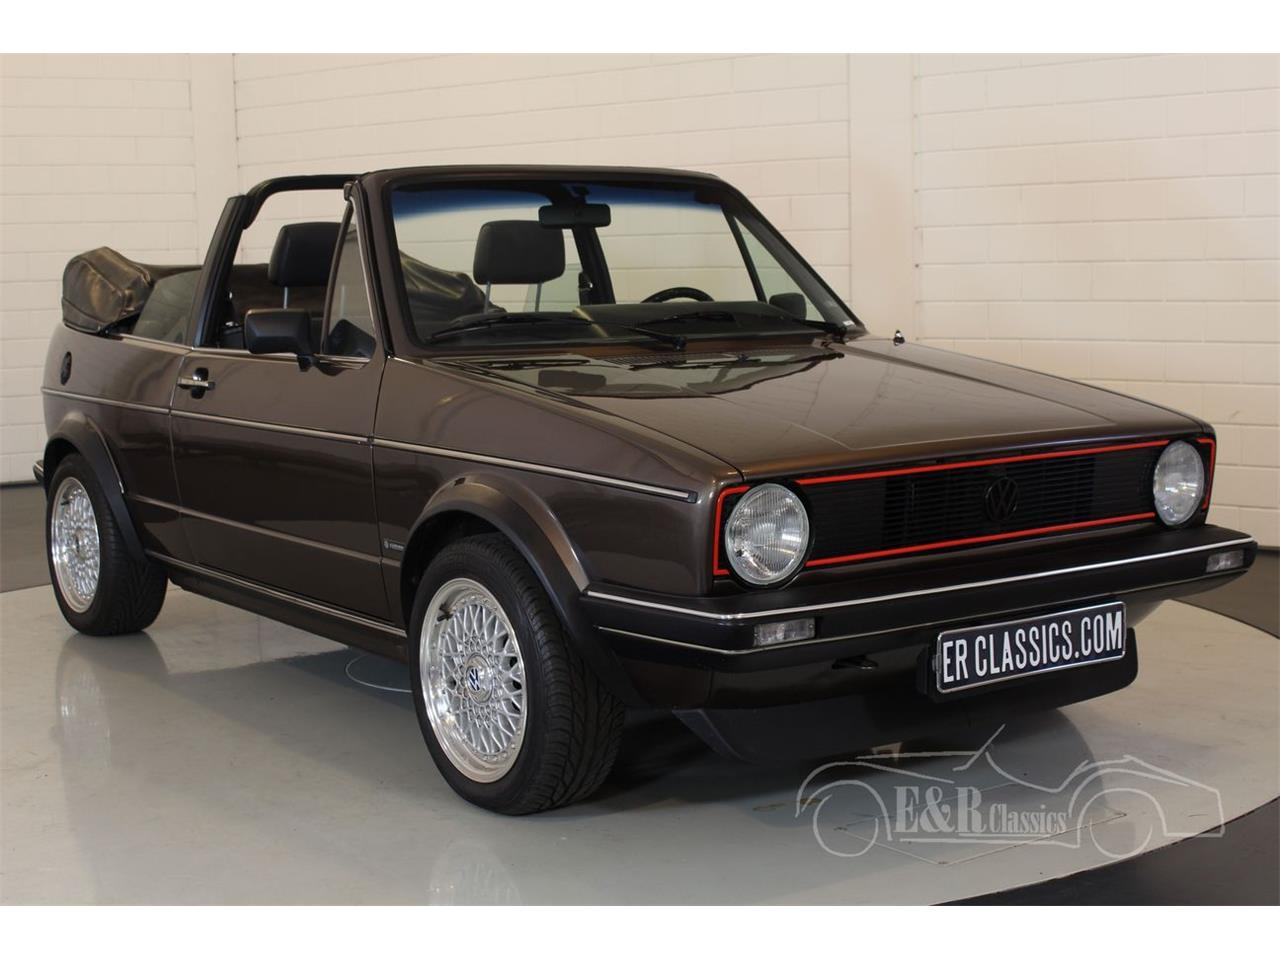 Large Picture of '84 Golf located in Waalwijk - Keine Angabe - - $19,100.00 Offered by E & R Classics - PH4B